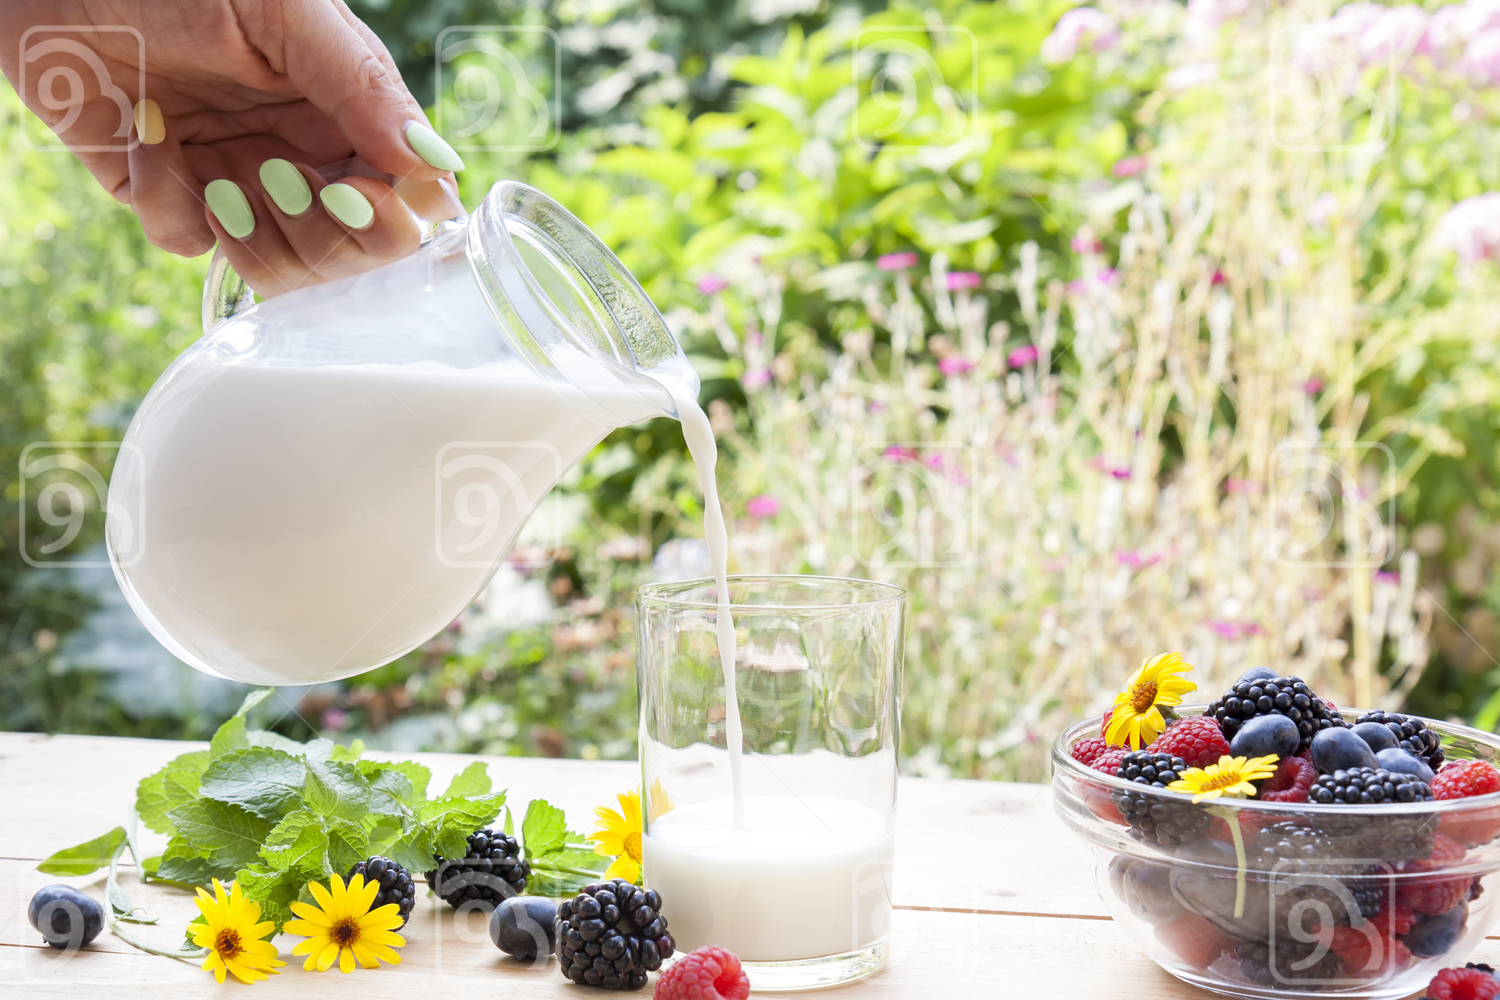 Pouring milk in the glass on the table with summer berries